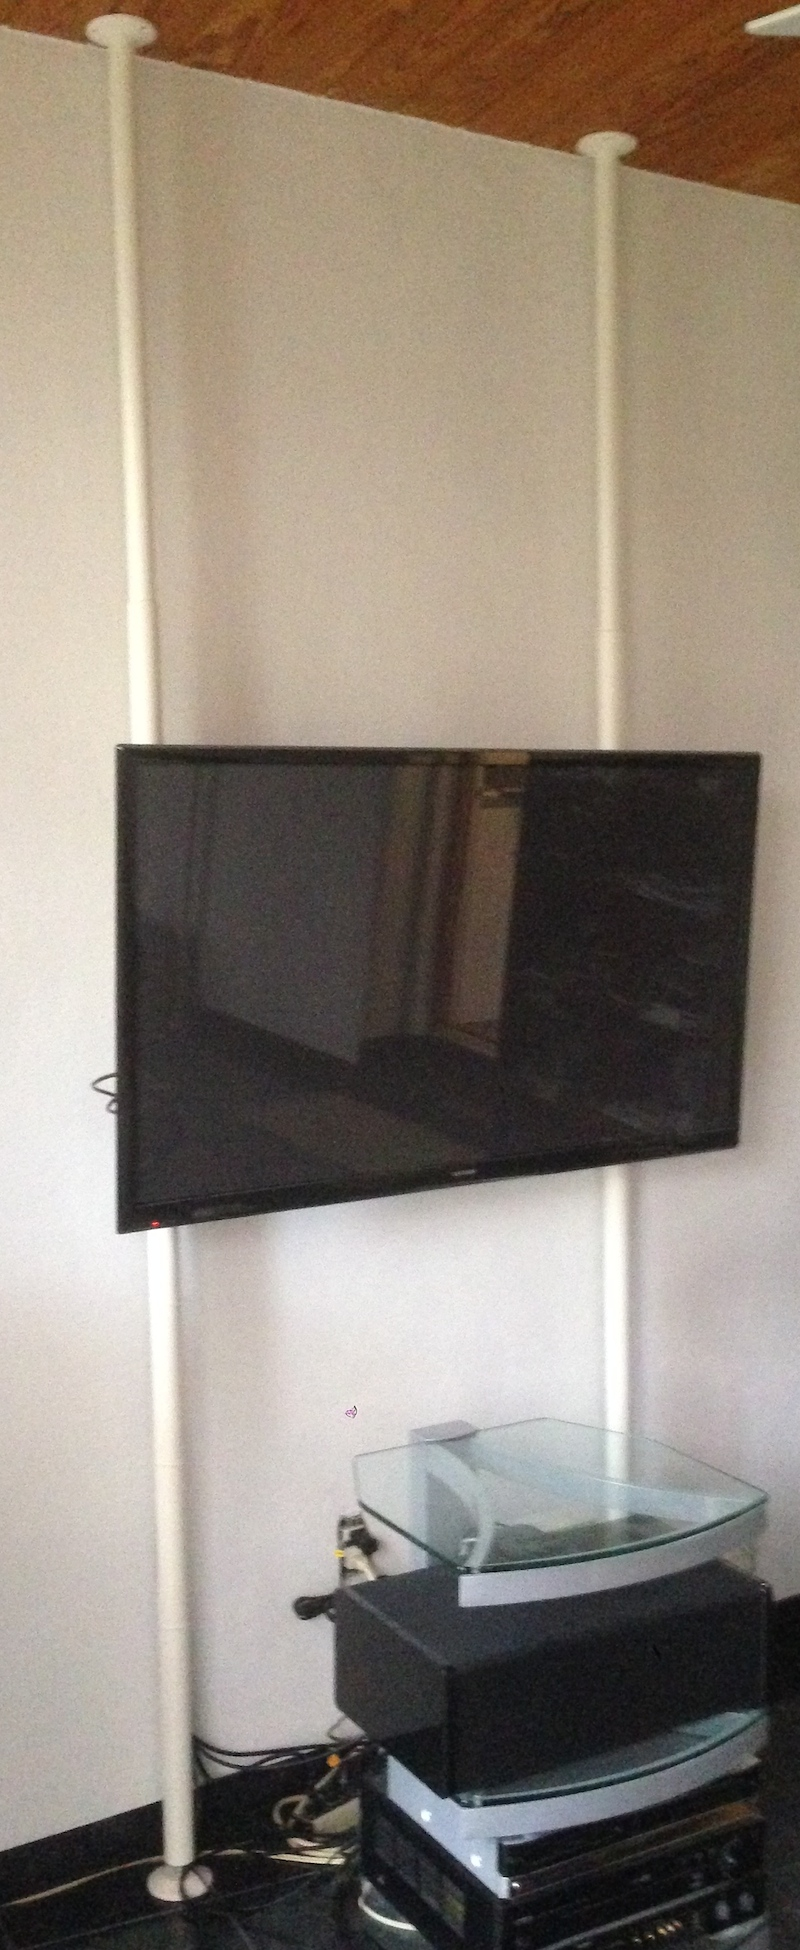 wall mount tv without drilling holes tronics kroesche io. Black Bedroom Furniture Sets. Home Design Ideas